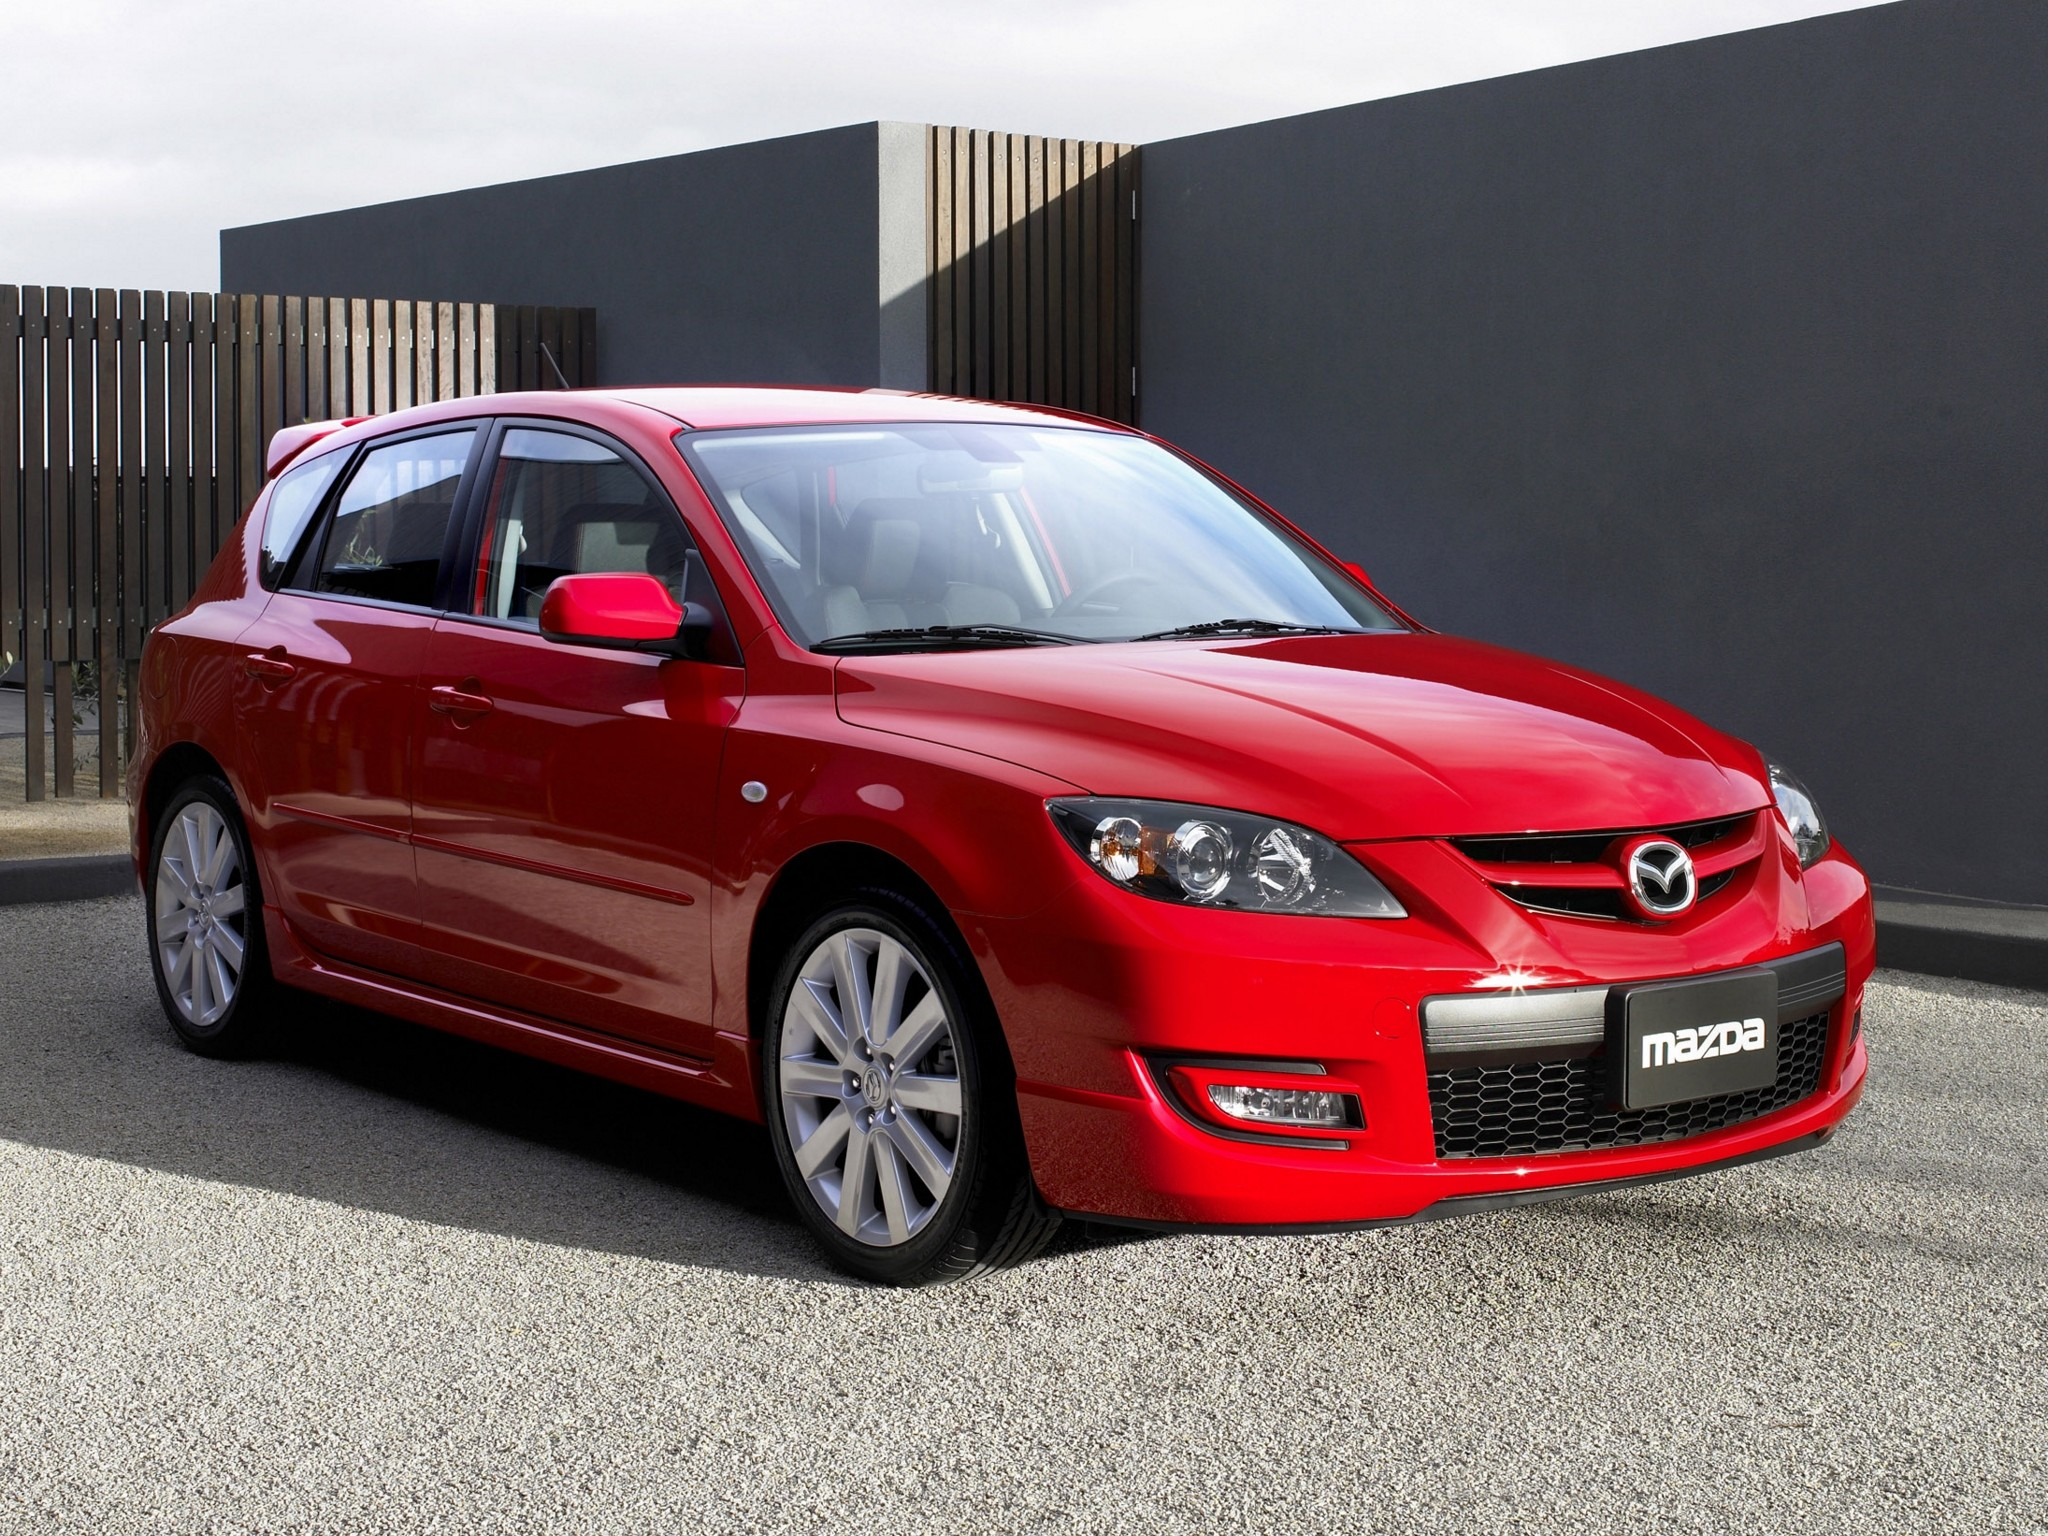 Mazda 3 Mps Mazdaspeed3 2006 2007 2008 2009 Autoevolution